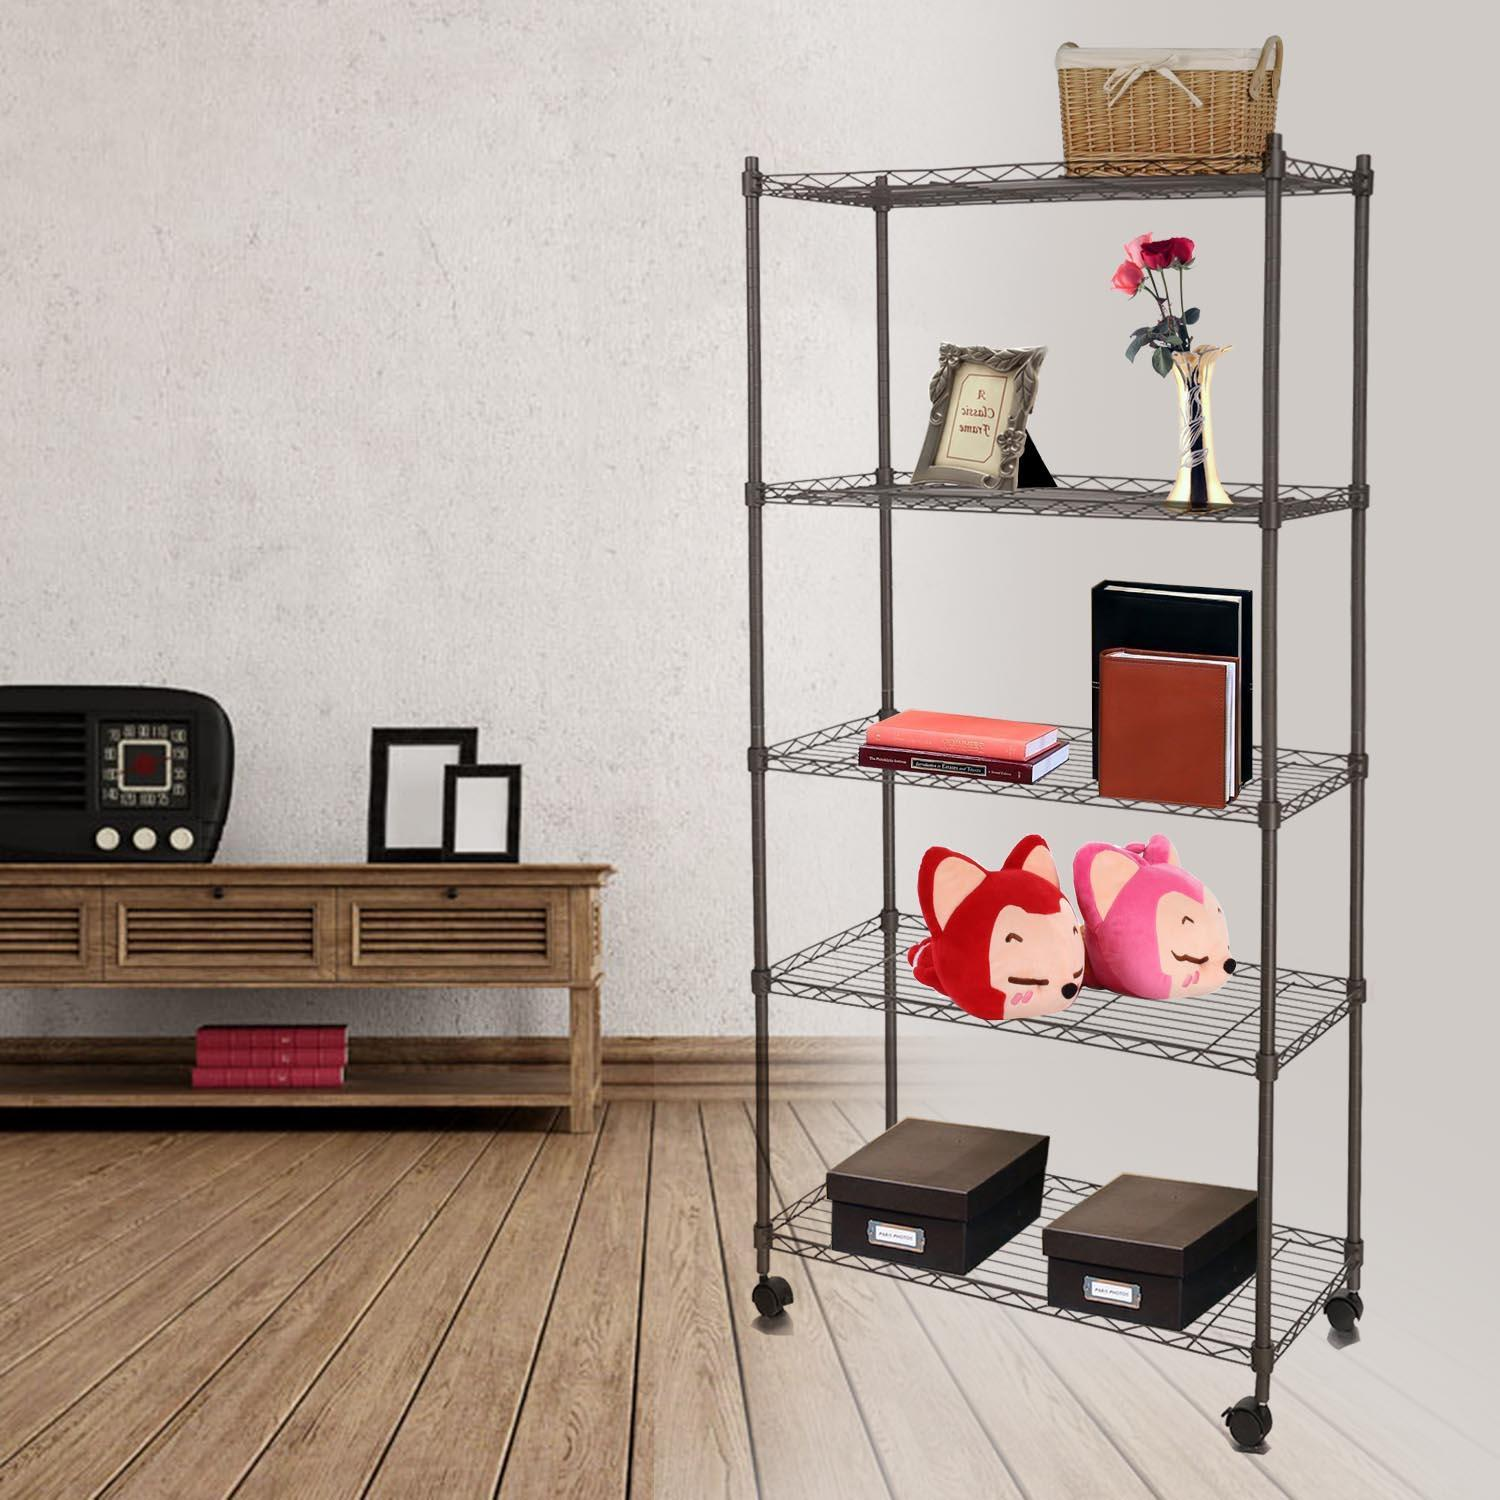 "Adjustable Wire Shelving 5-Tier Shelf Metal Shelf Unit with Wheels for Kitchen Bedroom Garage 29""W x 61""H x 14""D Muscle Rack"